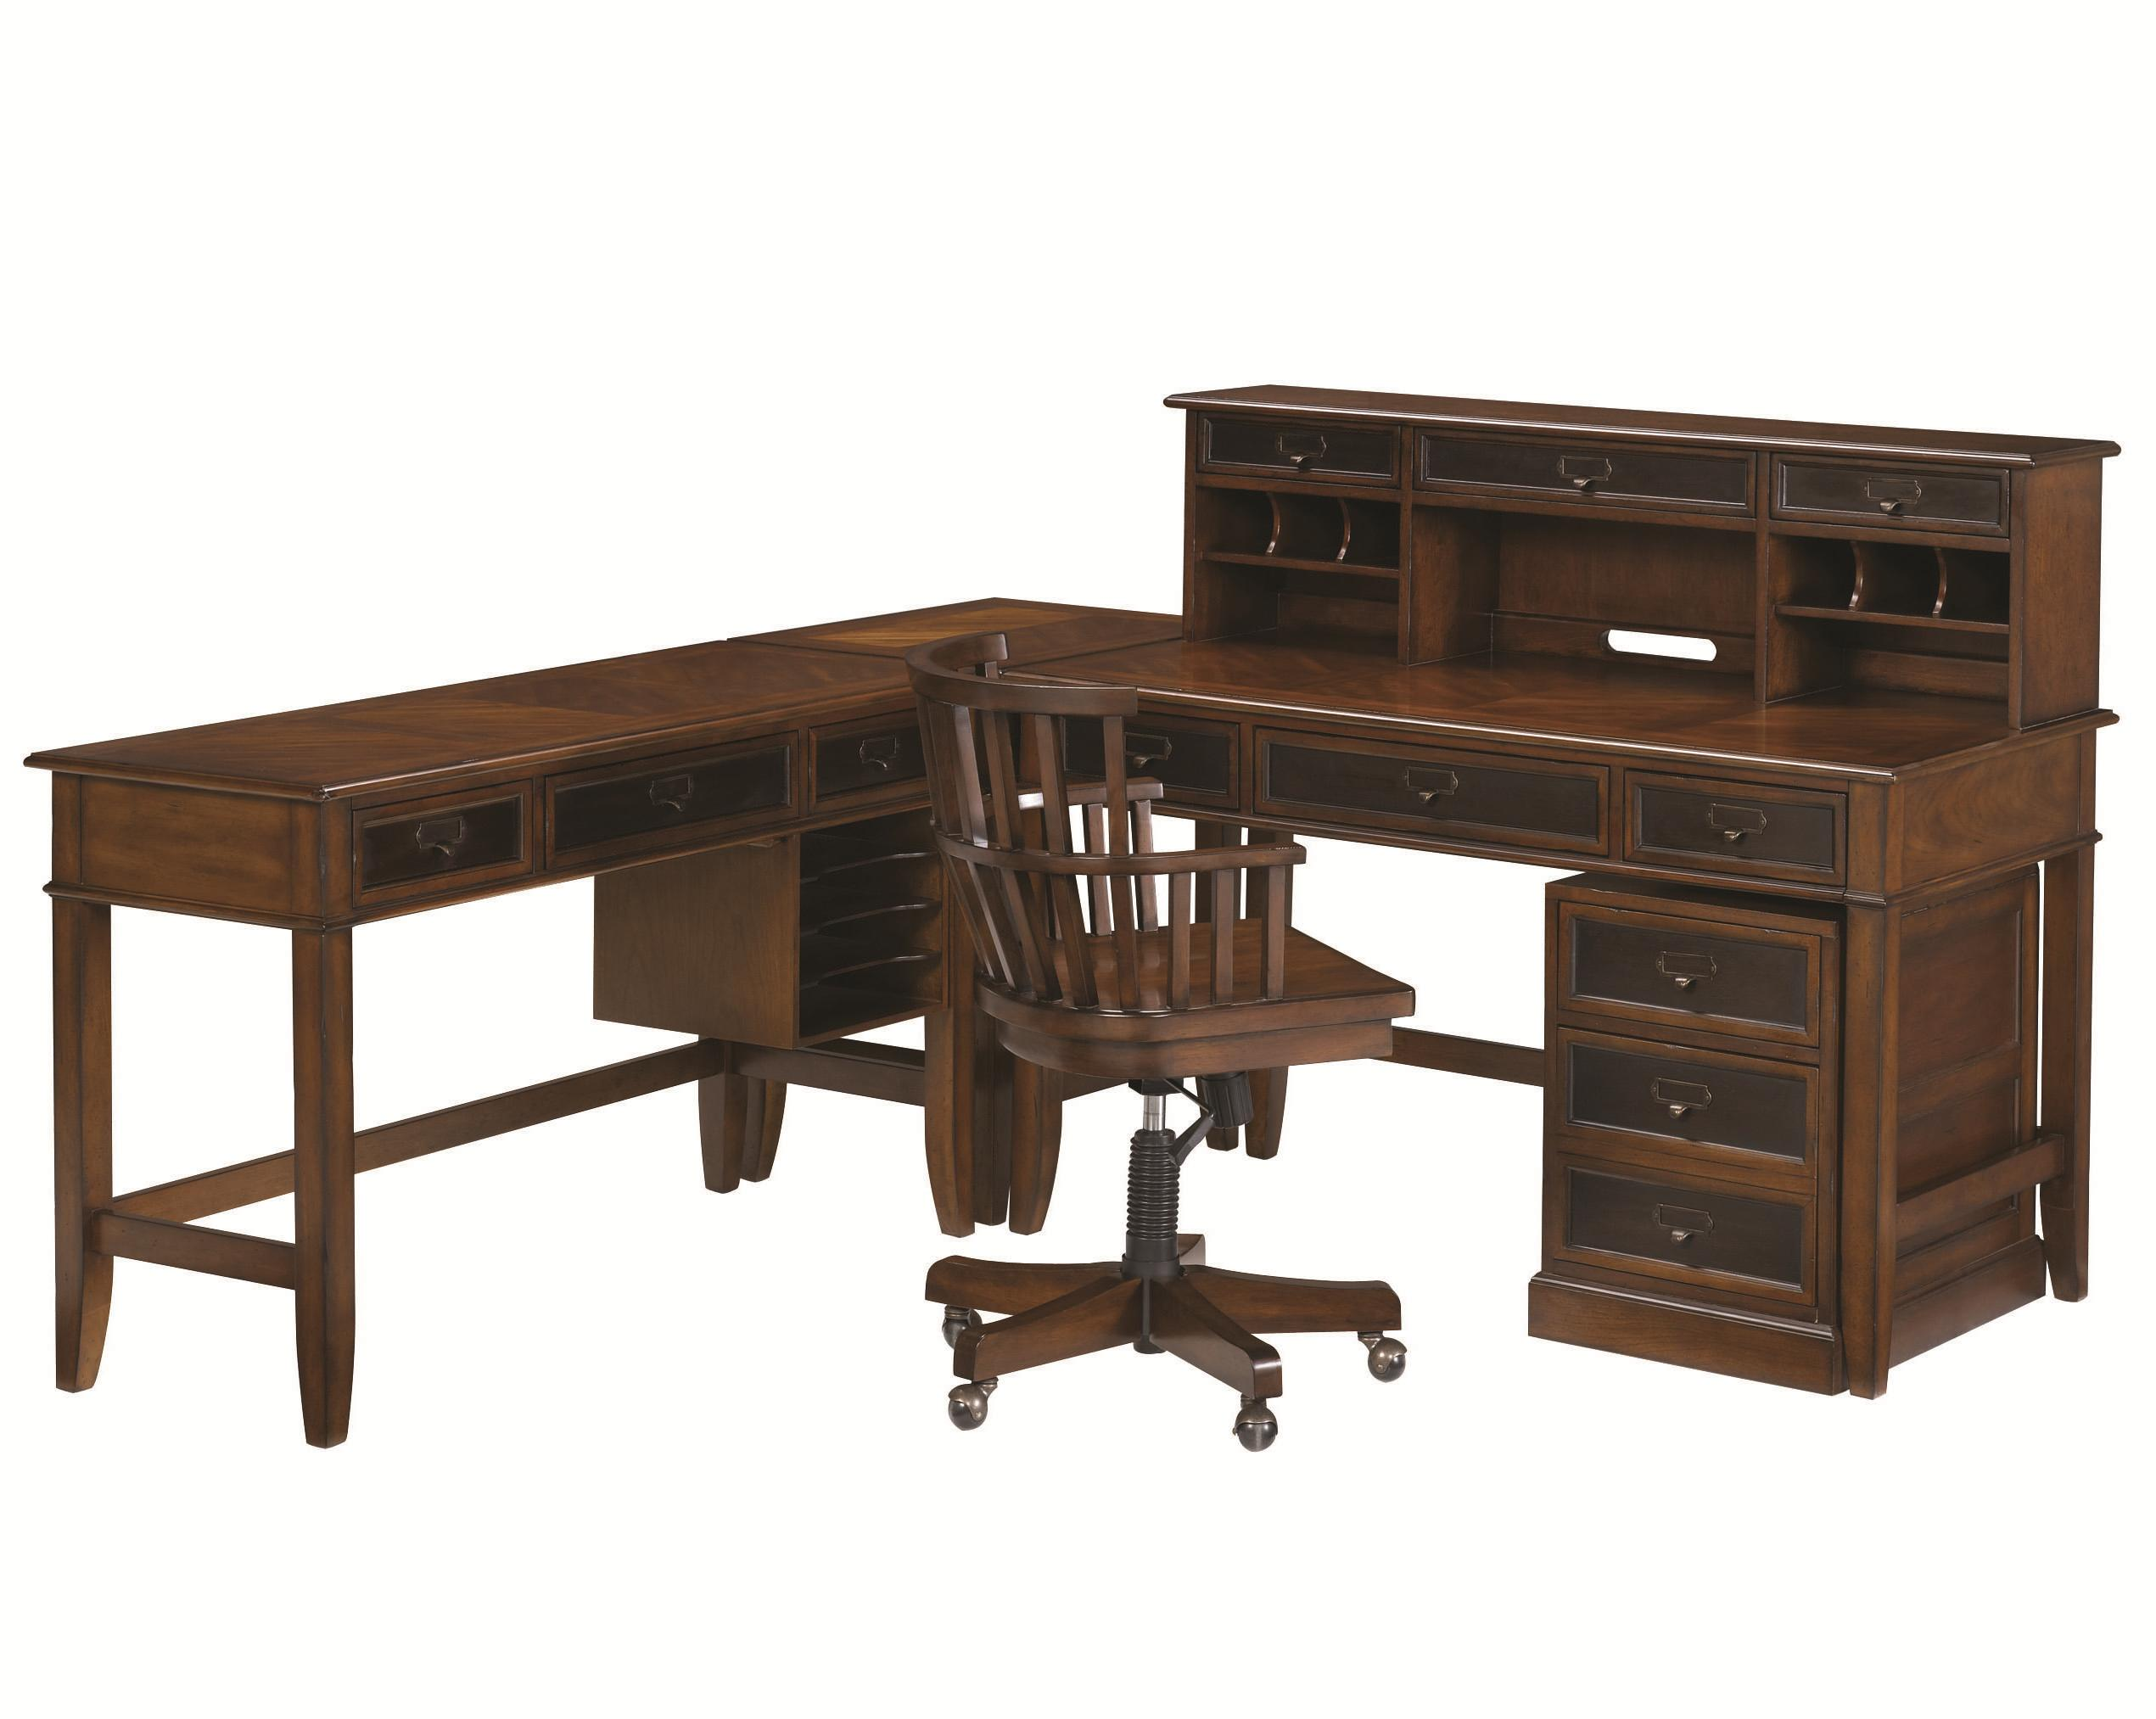 furniture desks home office credenza table. l shaped desk and credenza furniture desks home office table